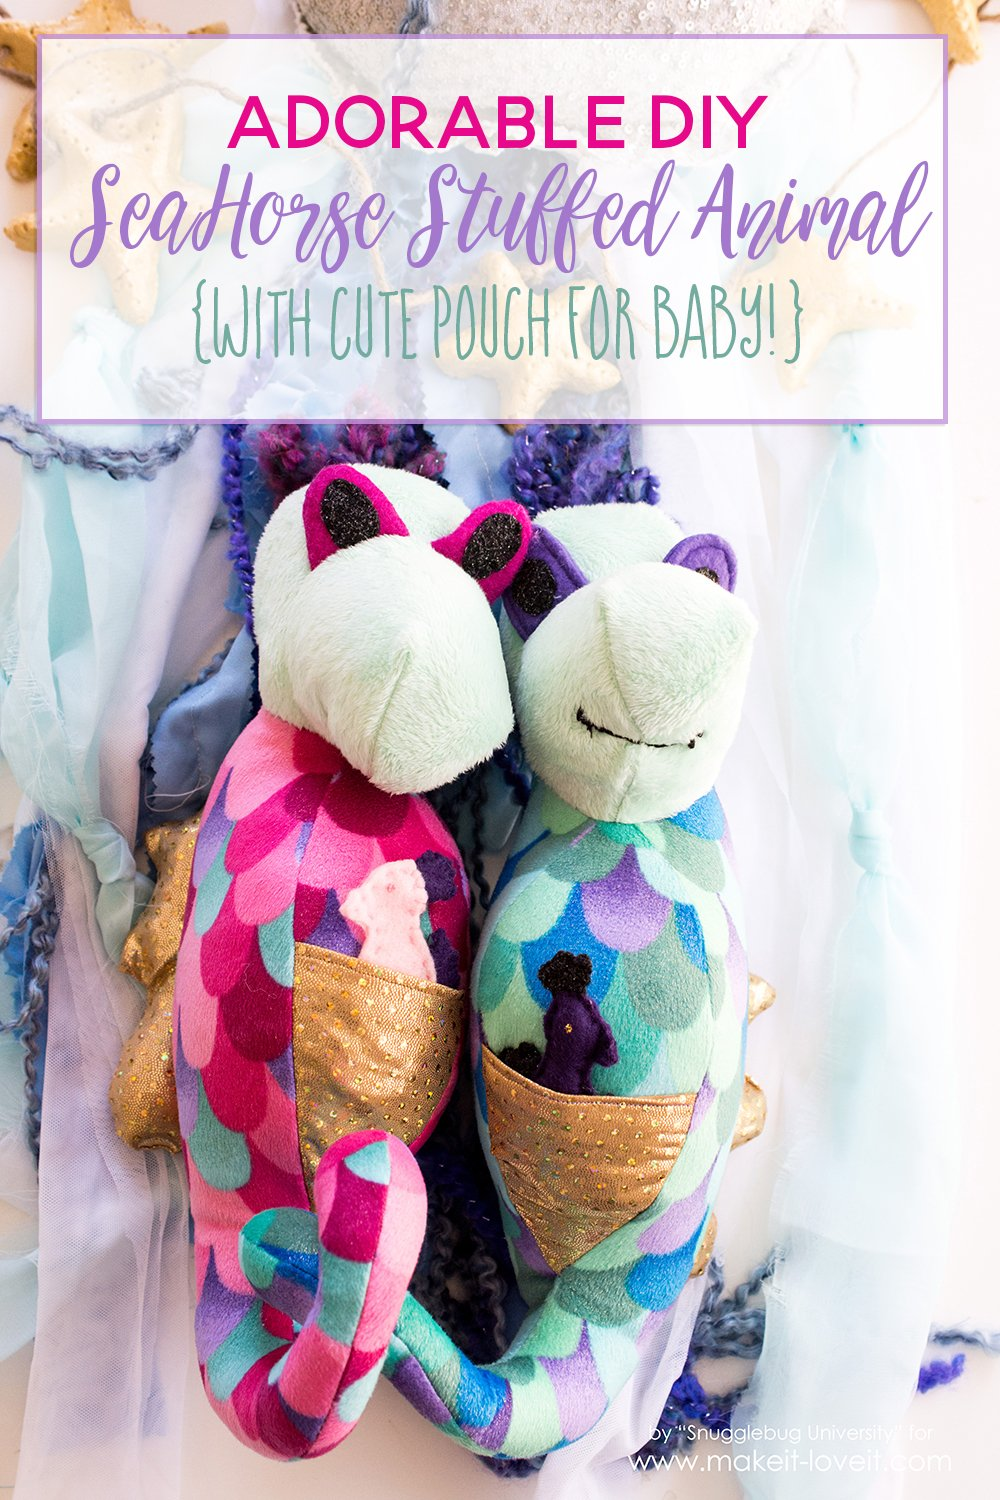 Adorable diy seahorse stuffed animal tutorial with pouch for baby